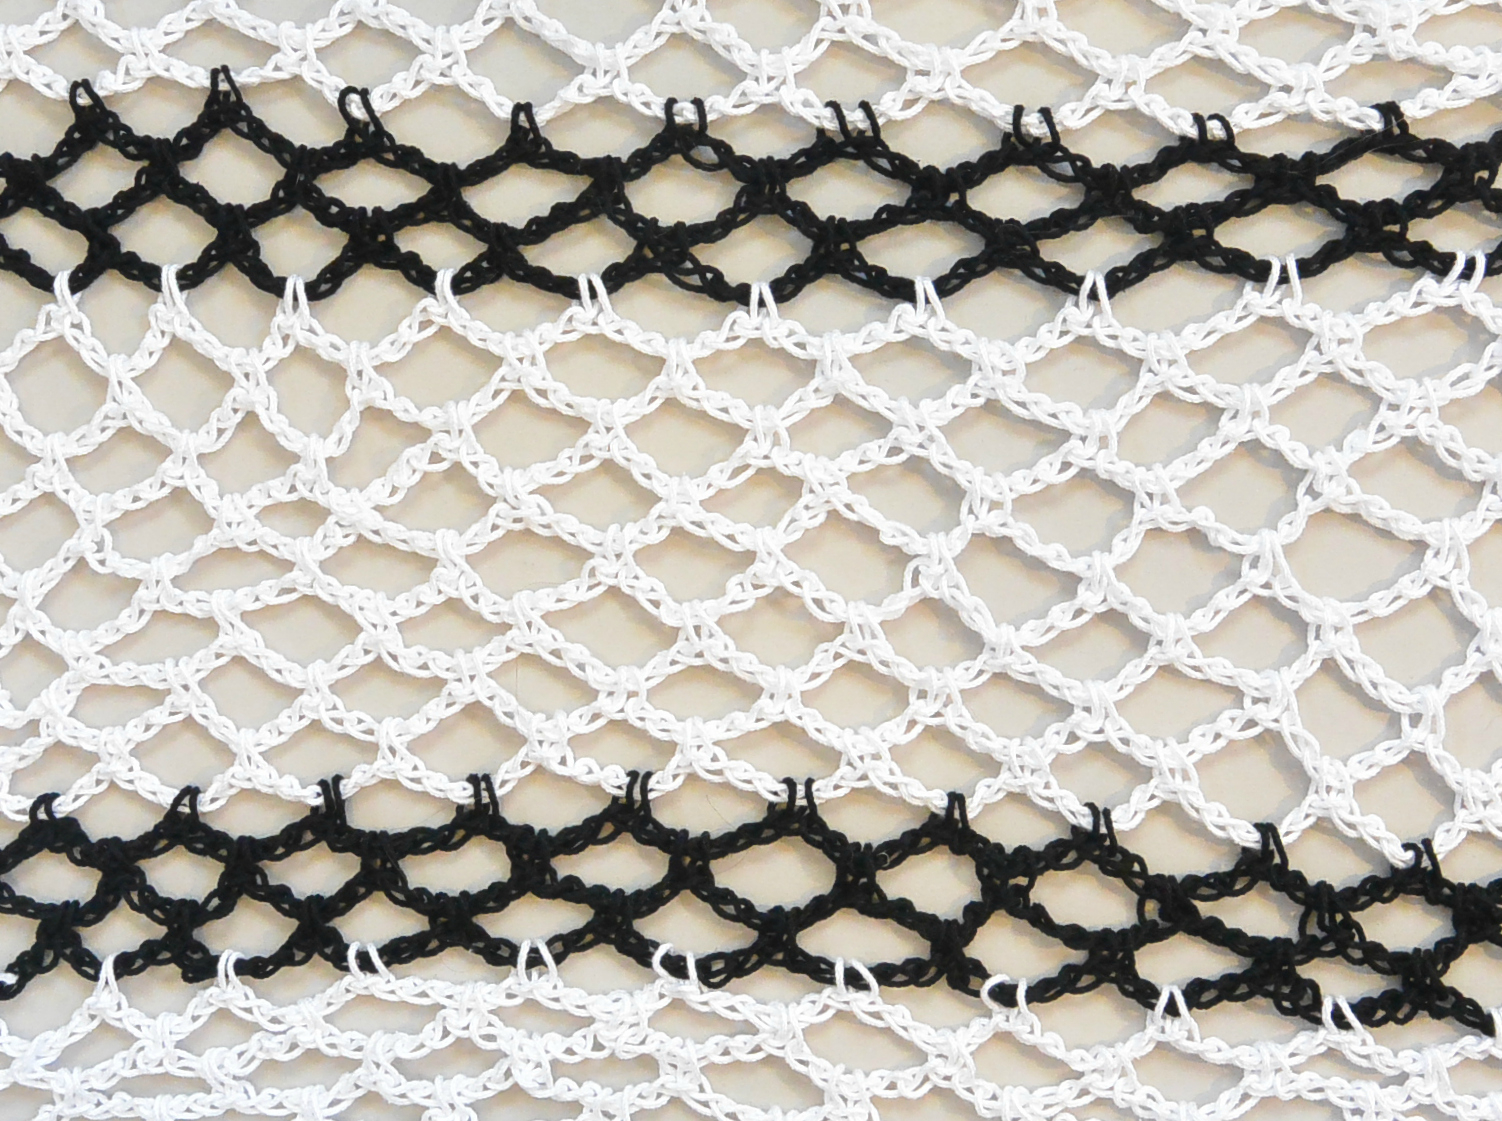 Diamond Crochet Pattern  How To Crochet Diamond Mesh Stitch Mama In A Stitch